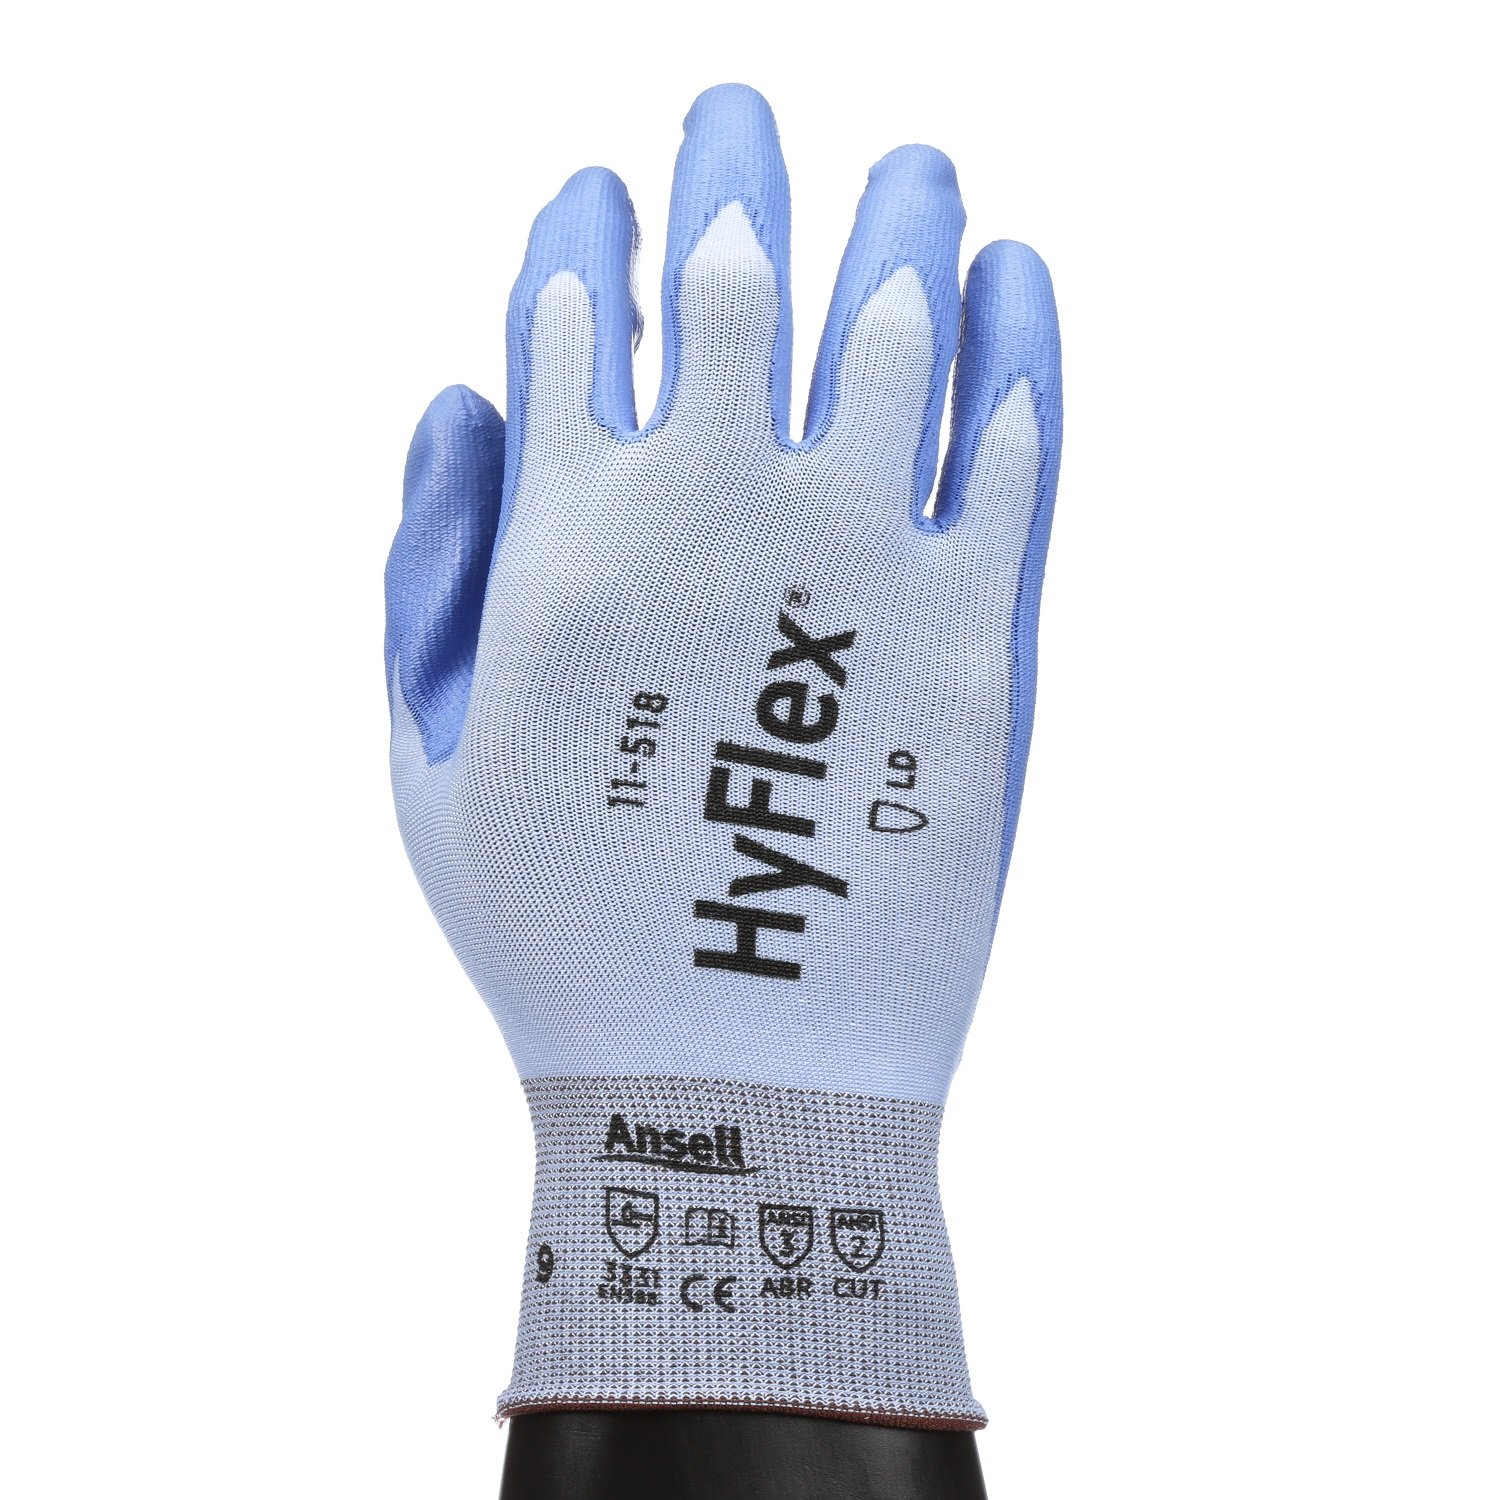 Ansell HyFlex 11-518 Light Duty Cut Resistant Gloves, Size 9 by Ansell (Image #1)